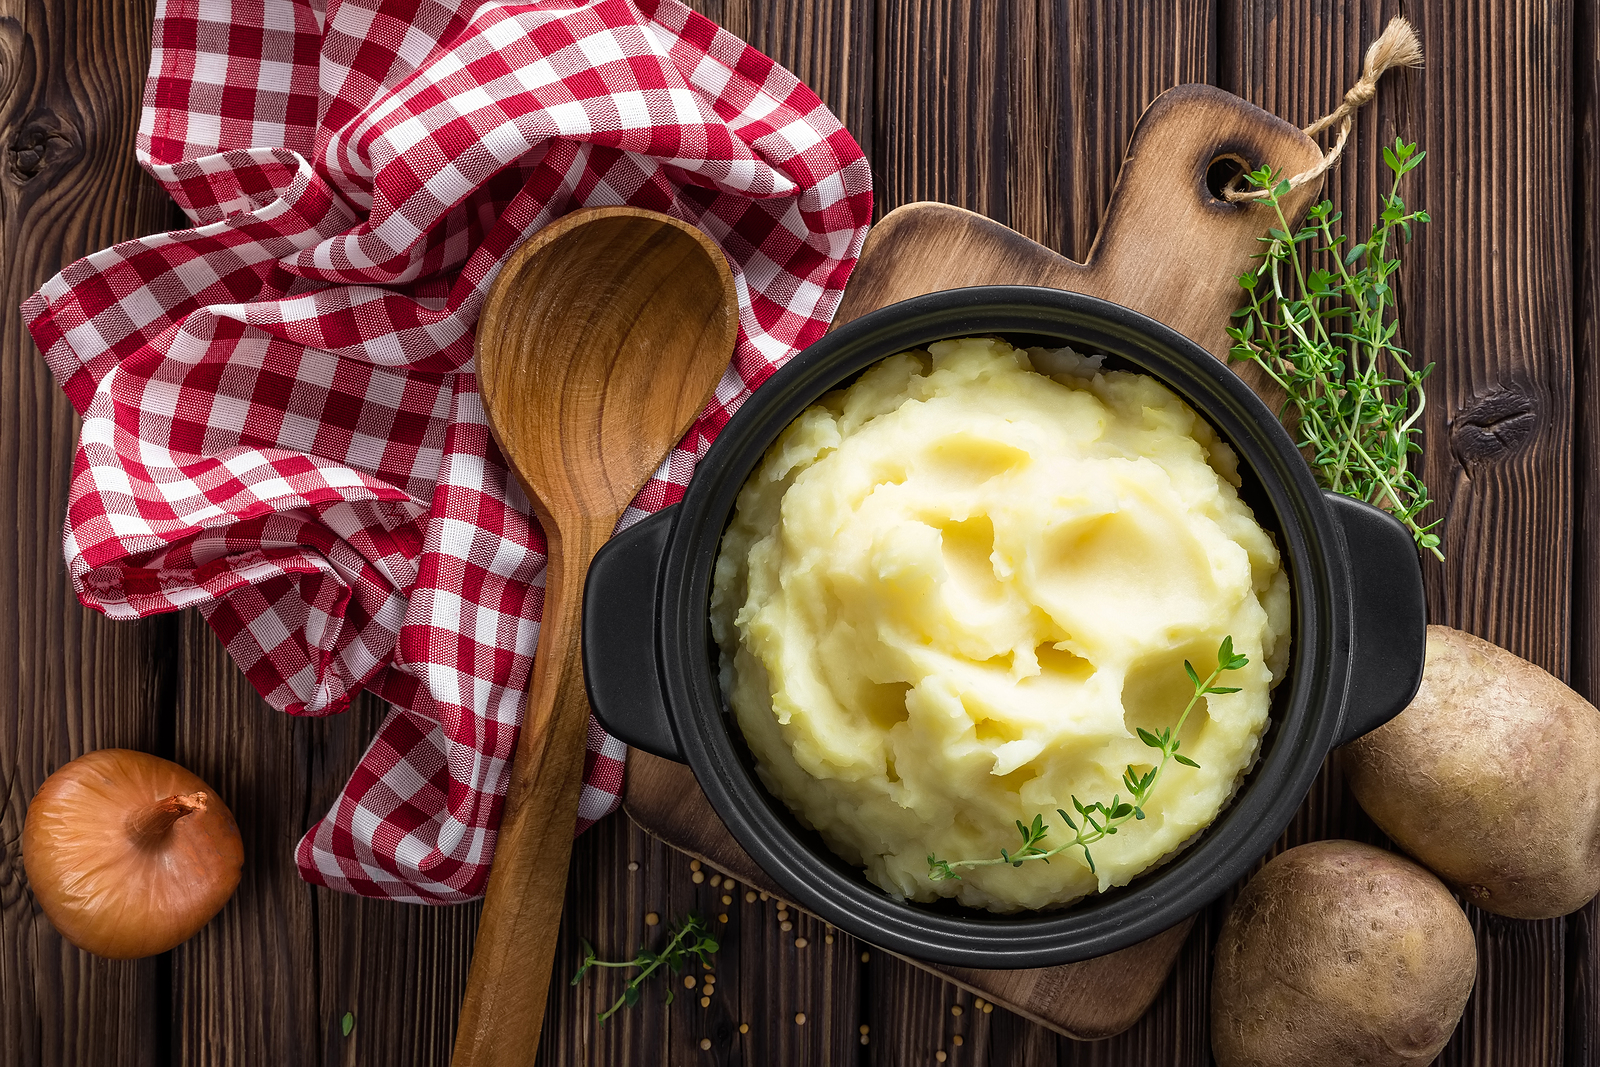 cooked mashed potato in a bowl on table